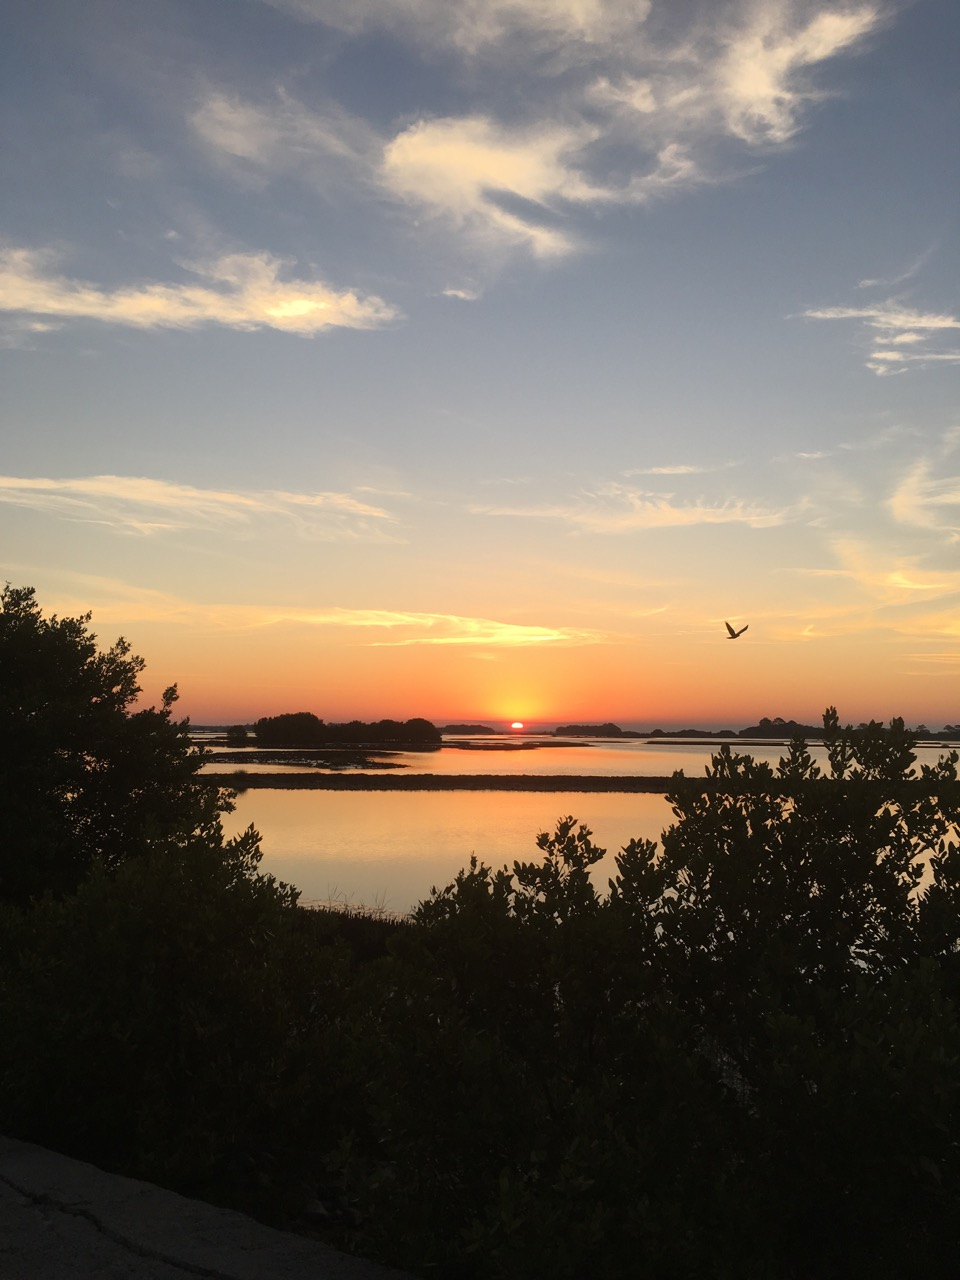 One last Cedar Key sunrise